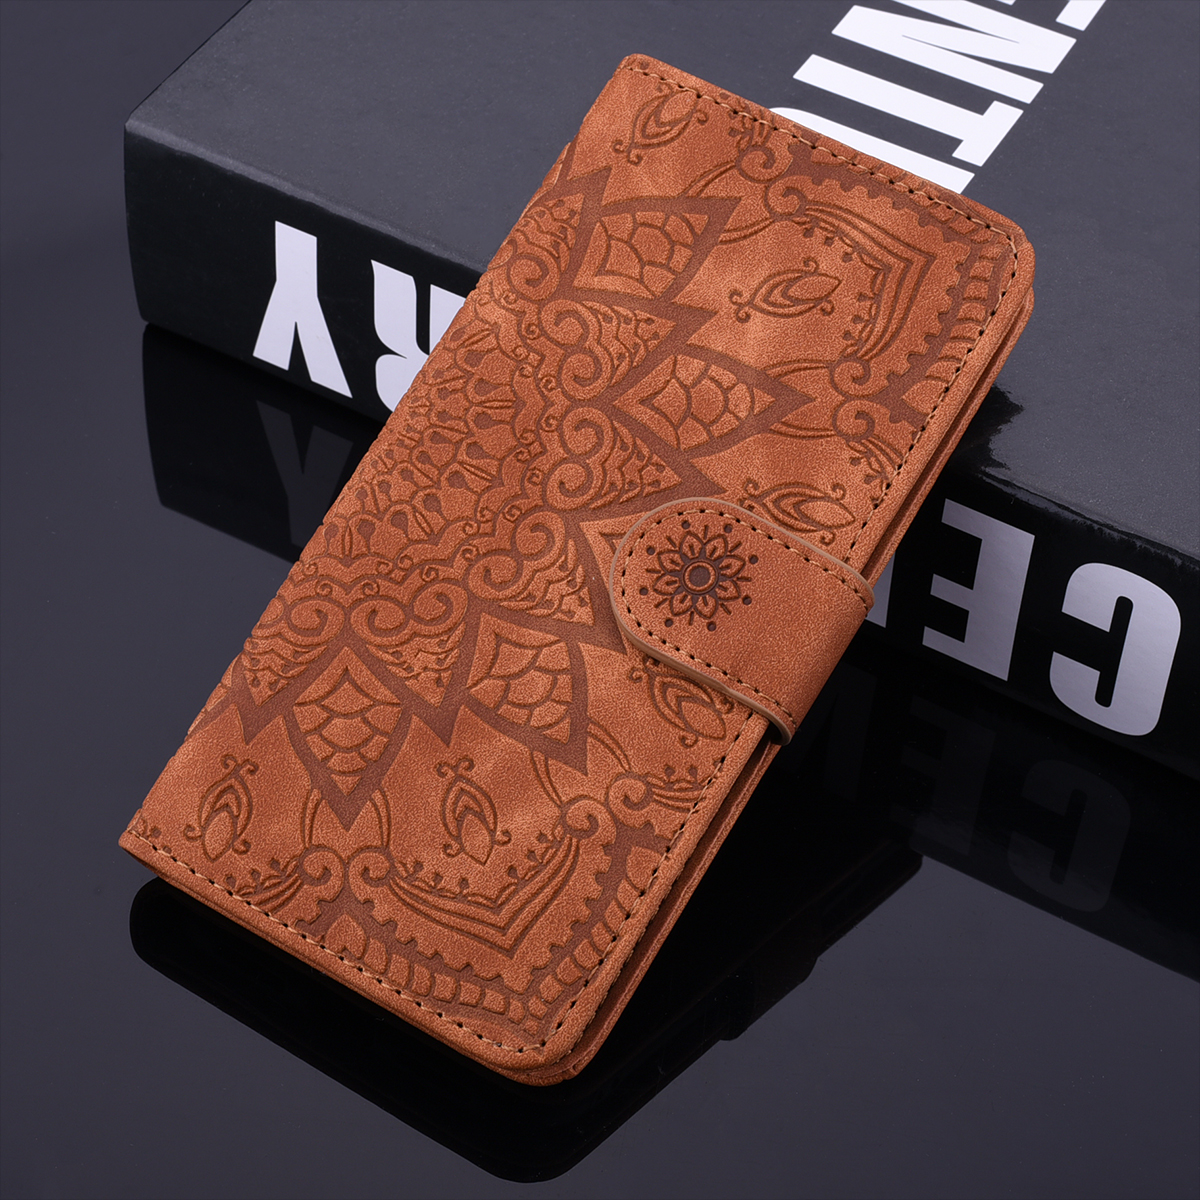 Leather <font><b>Case</b></font> For Apple <font><b>iPhone</b></font> 11 7 8 Pro 6s 6 XR <font><b>5S</b></font> Plus X XS Max SE 5 Flower Flip Book <font><b>Case</b></font> <font><b>Wallet</b></font> Cover For <font><b>iPhone</b></font> 8 7 6s Plus image